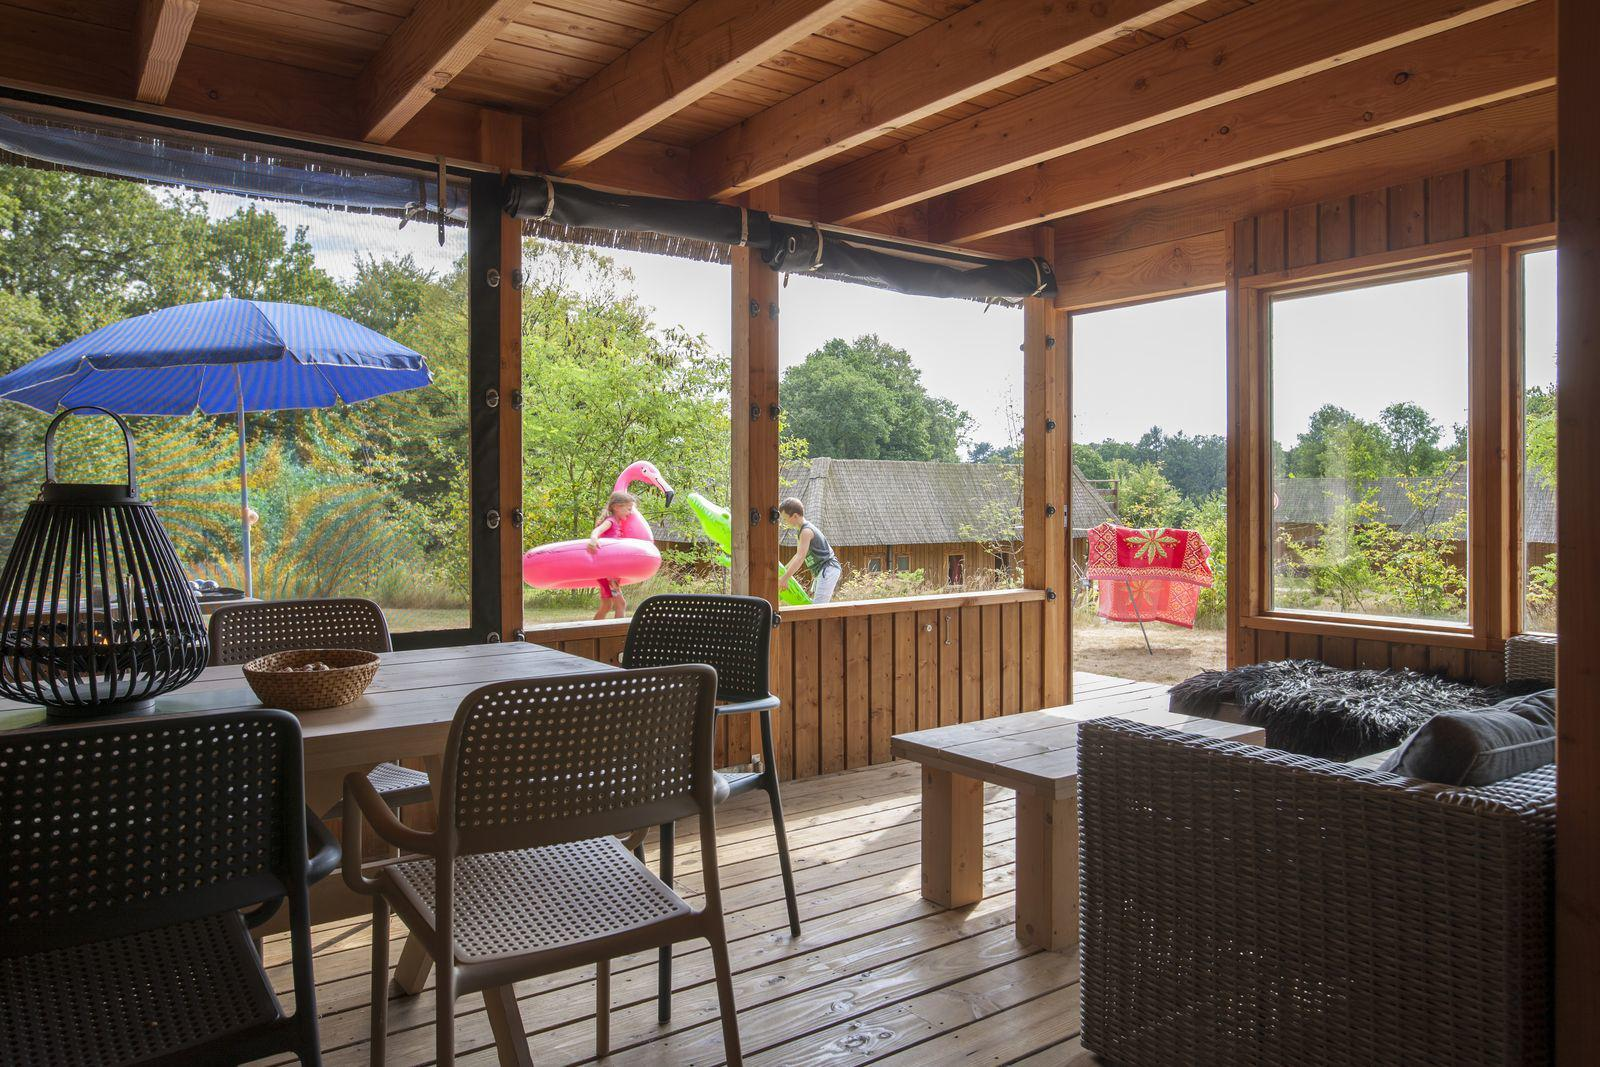 Chalet 7 persoons in Drenthe Witterzomer